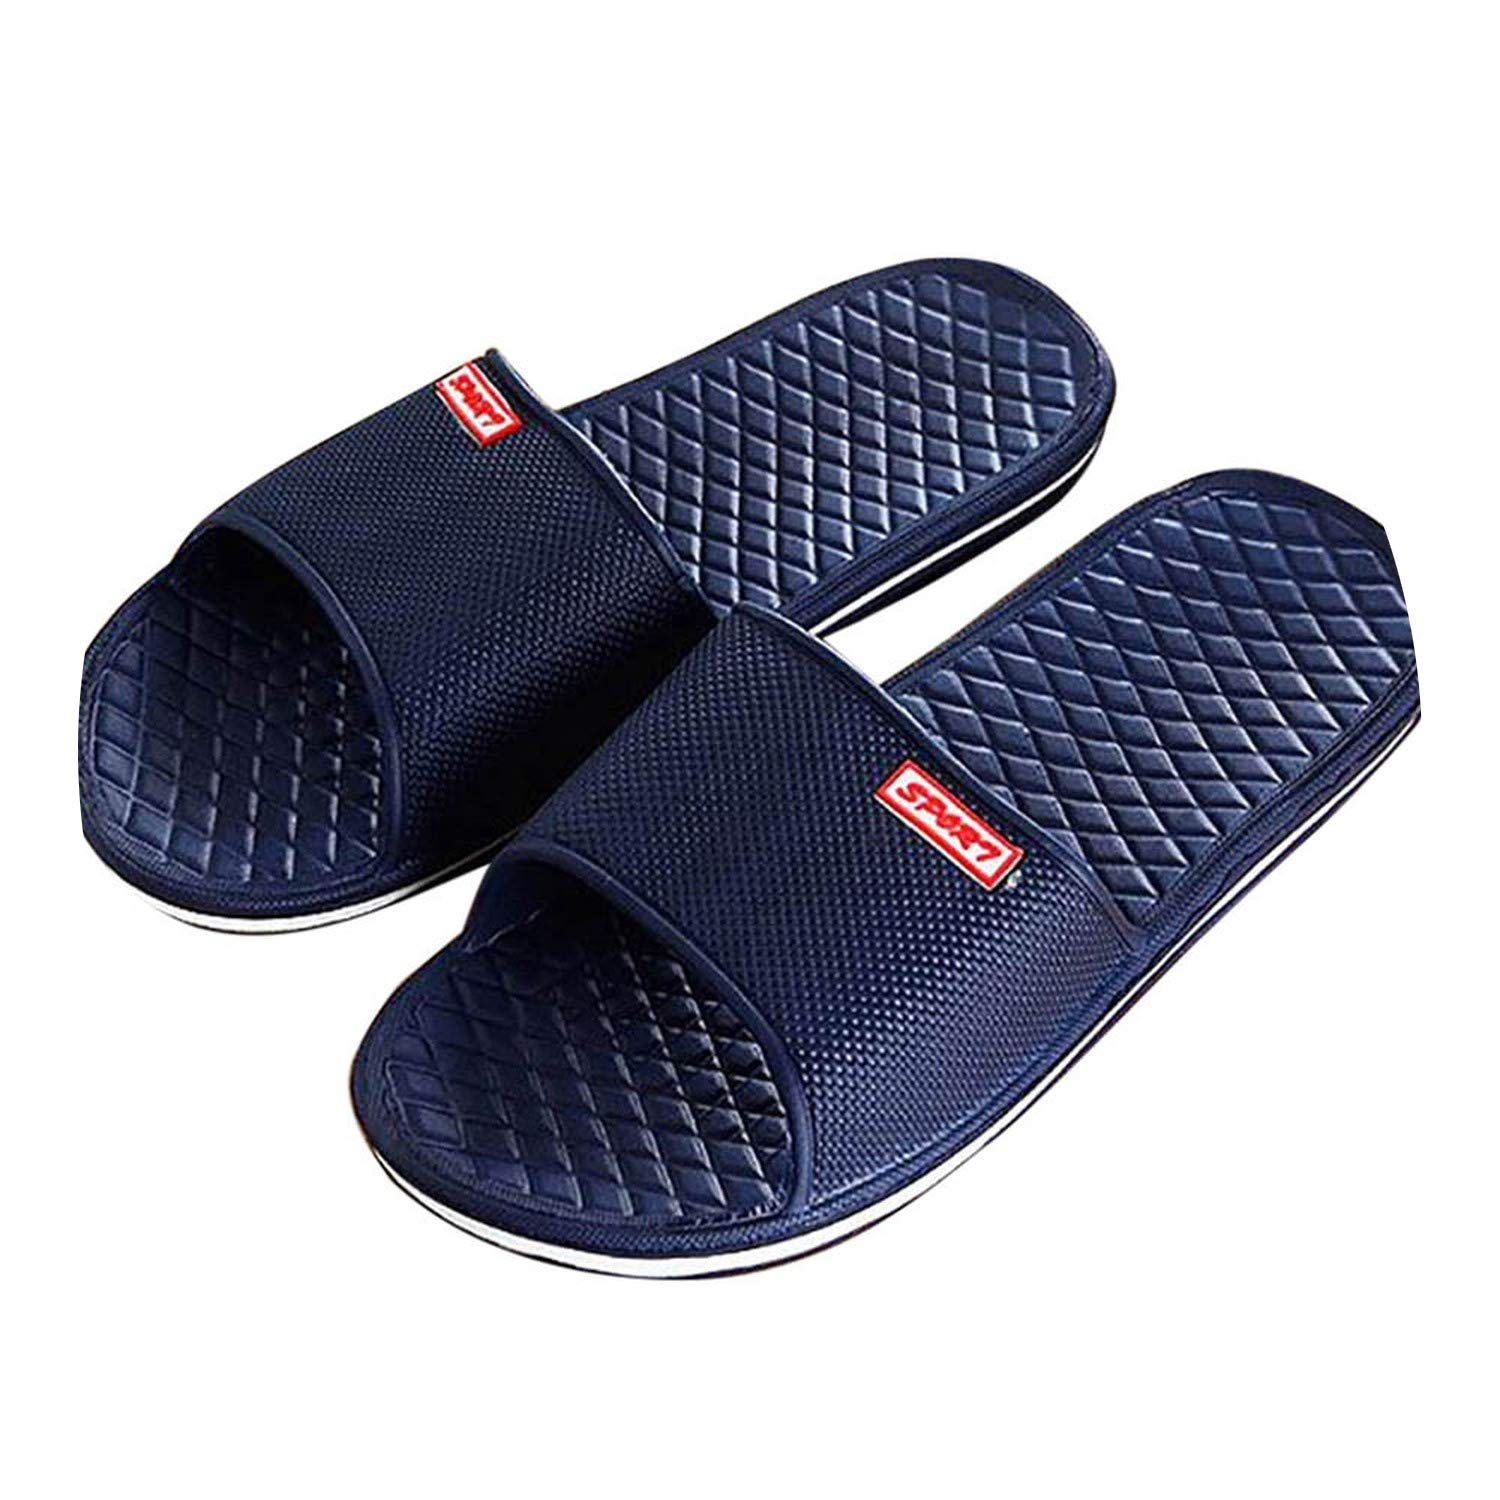 Casual Slippers Shoes for Men Solid Flat Bath Slippers,B,42,China